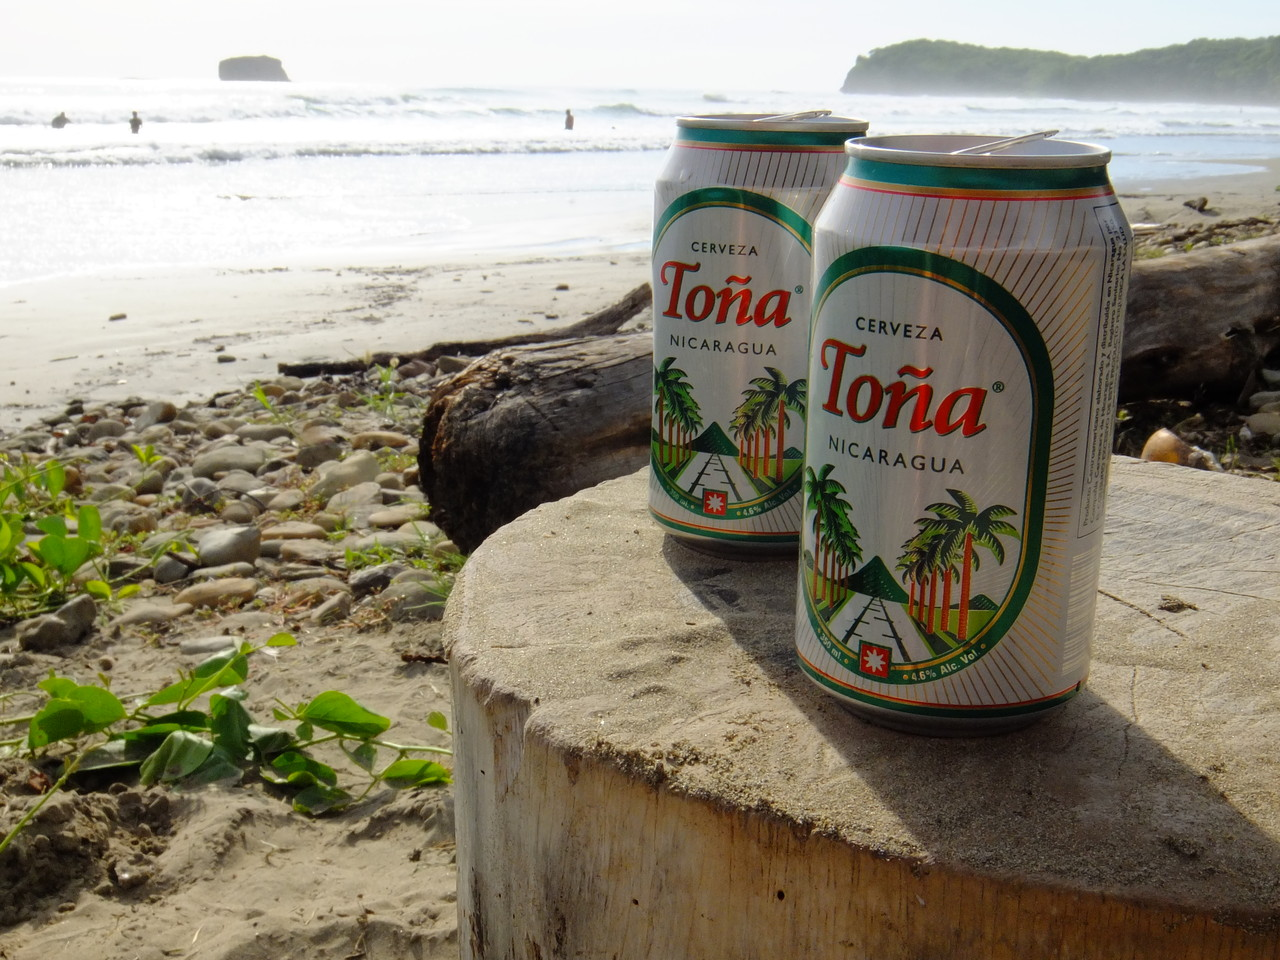 Enjoy a Tona on Playa Hermosa!